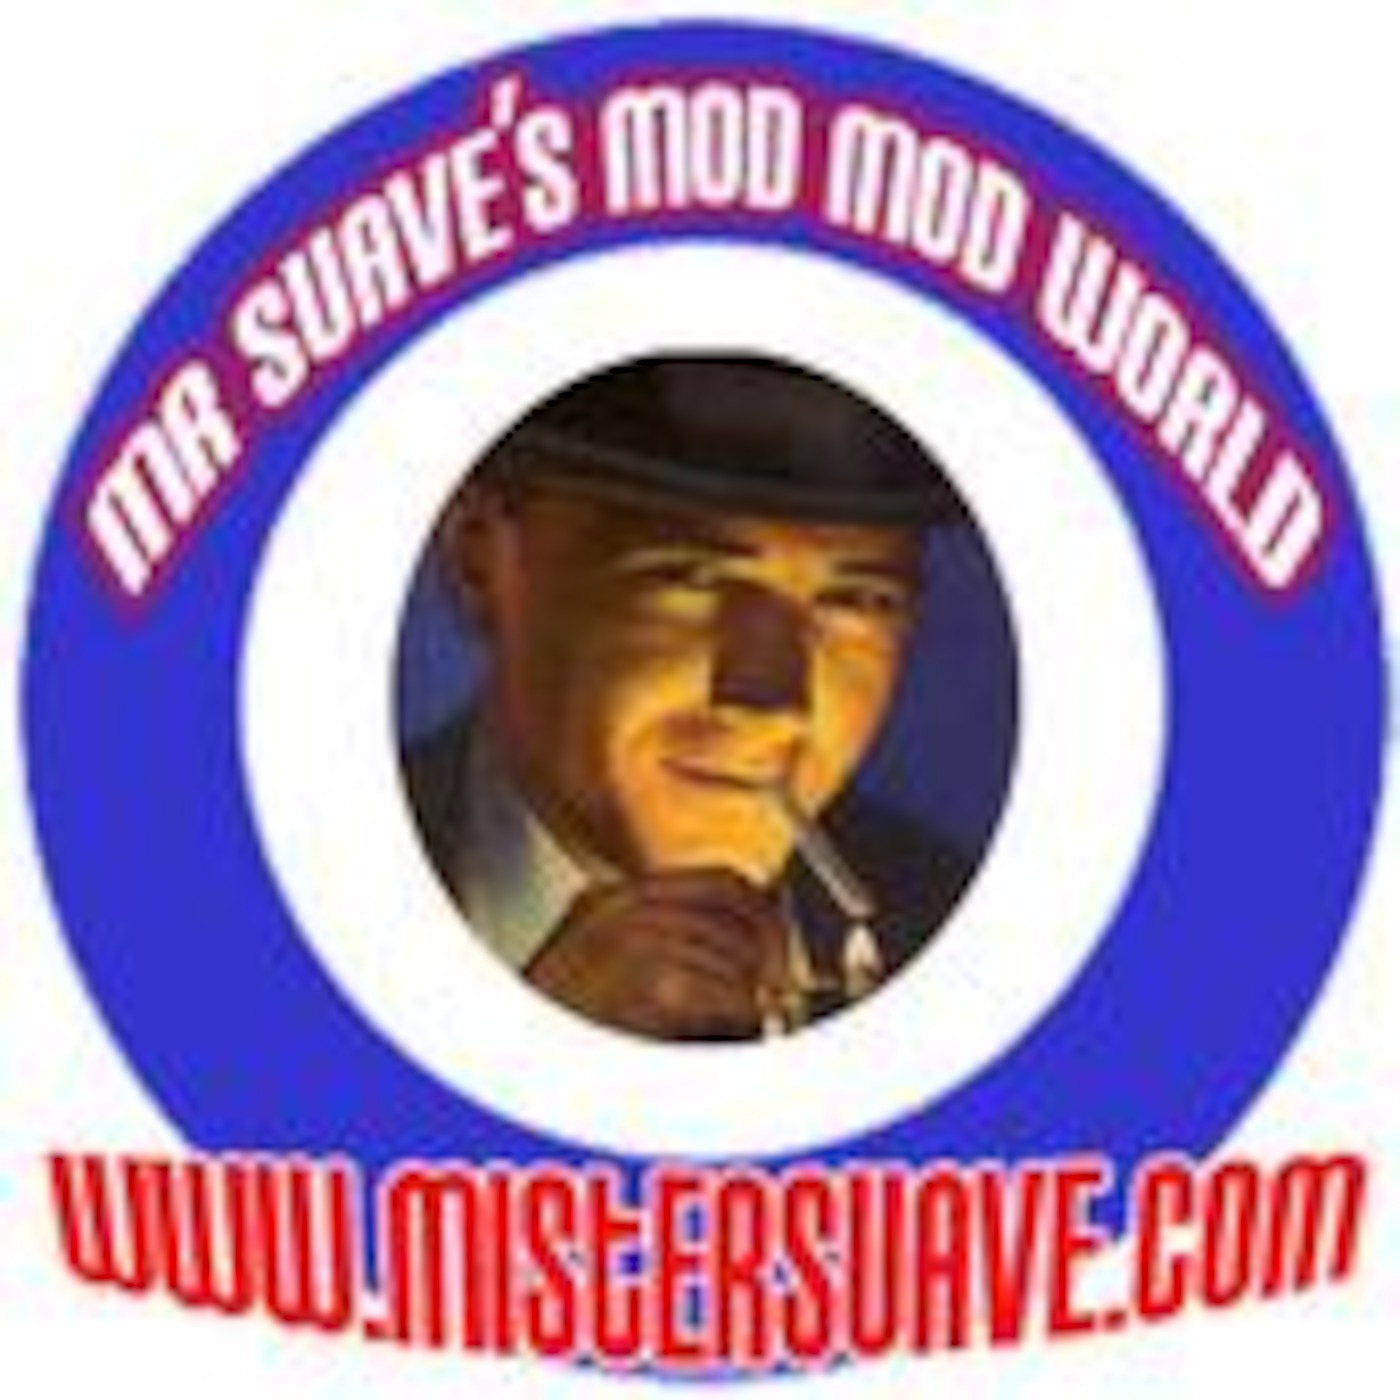 Mr. Suave's Mod Mod World